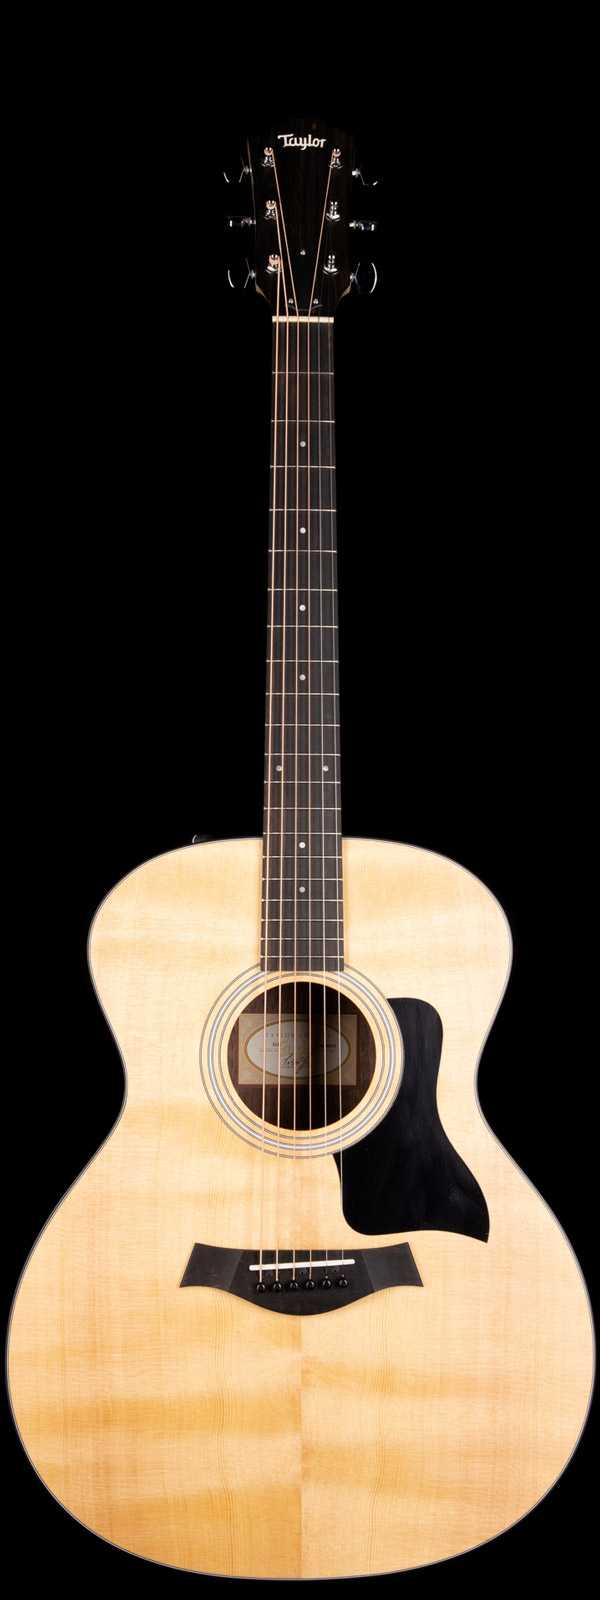 Taylor 114e Sitka Spruce Top Layered Walnut Back Natural Finish